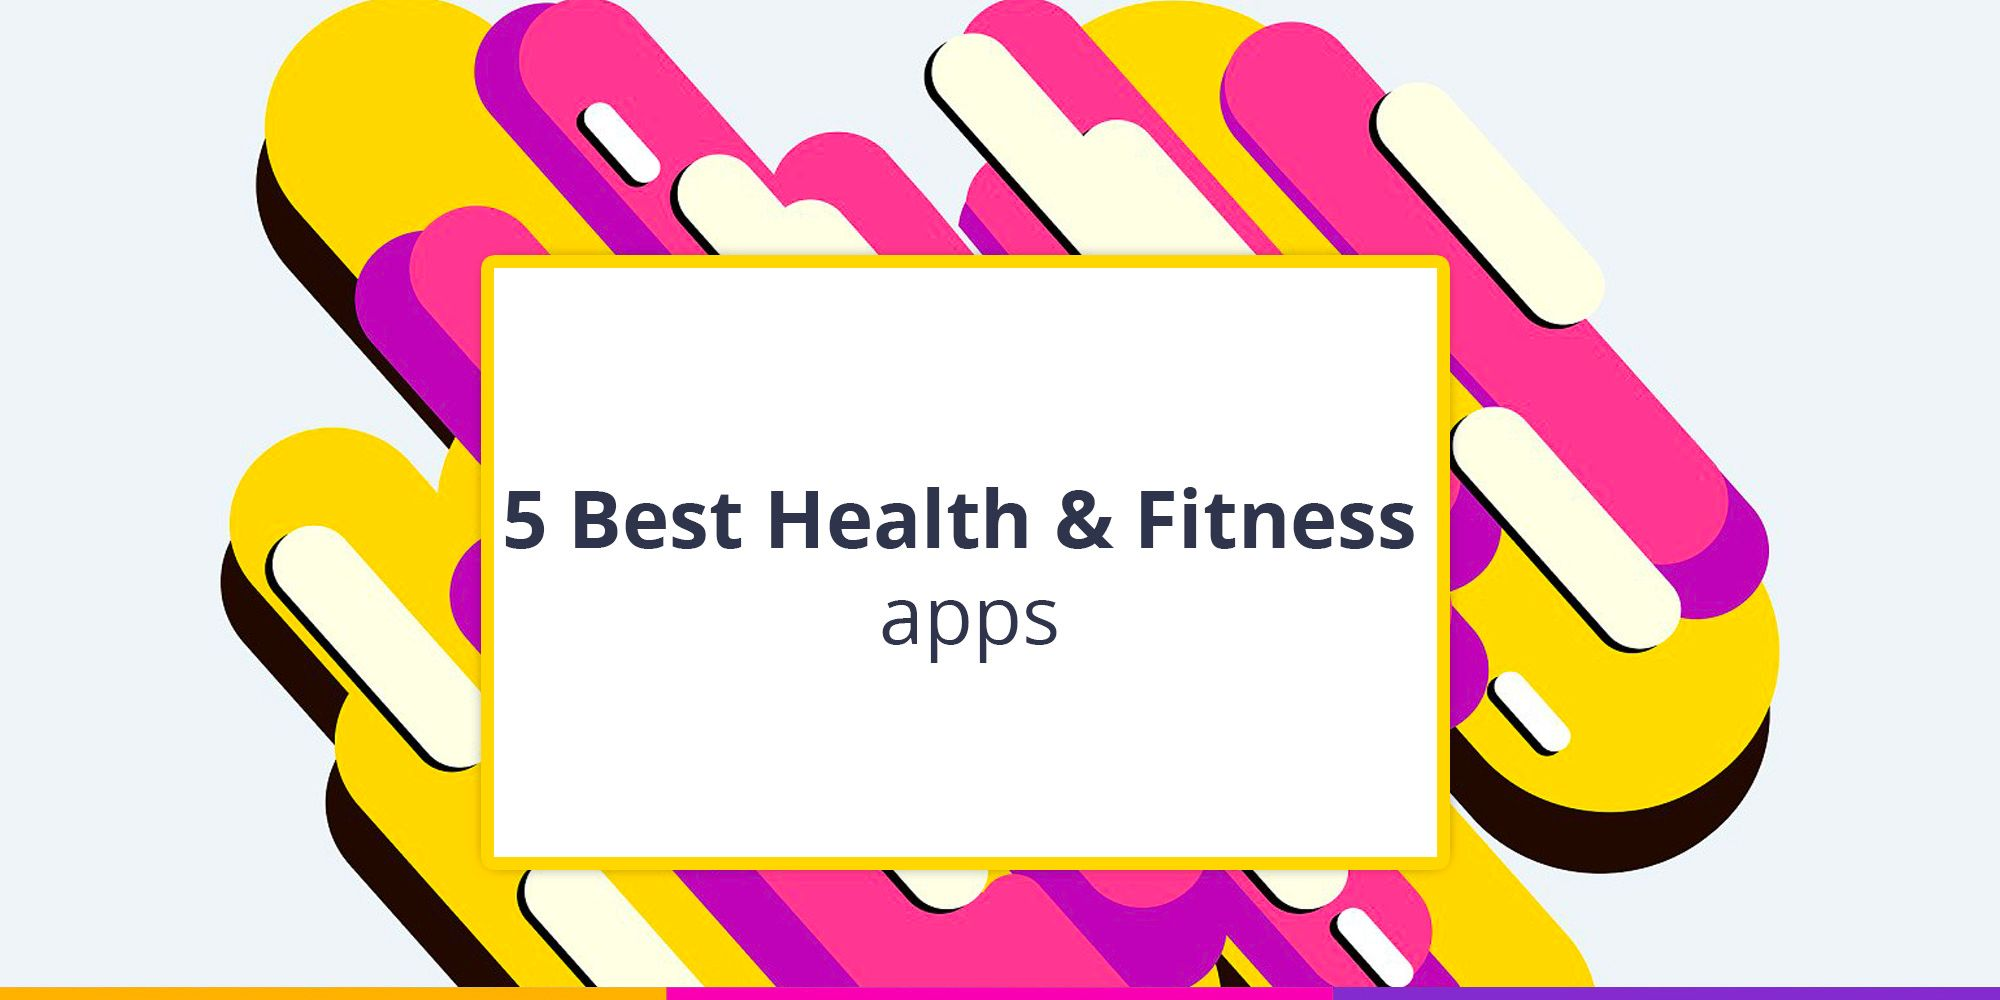 5 Best Health&Fitness apps of the upcoming Spring